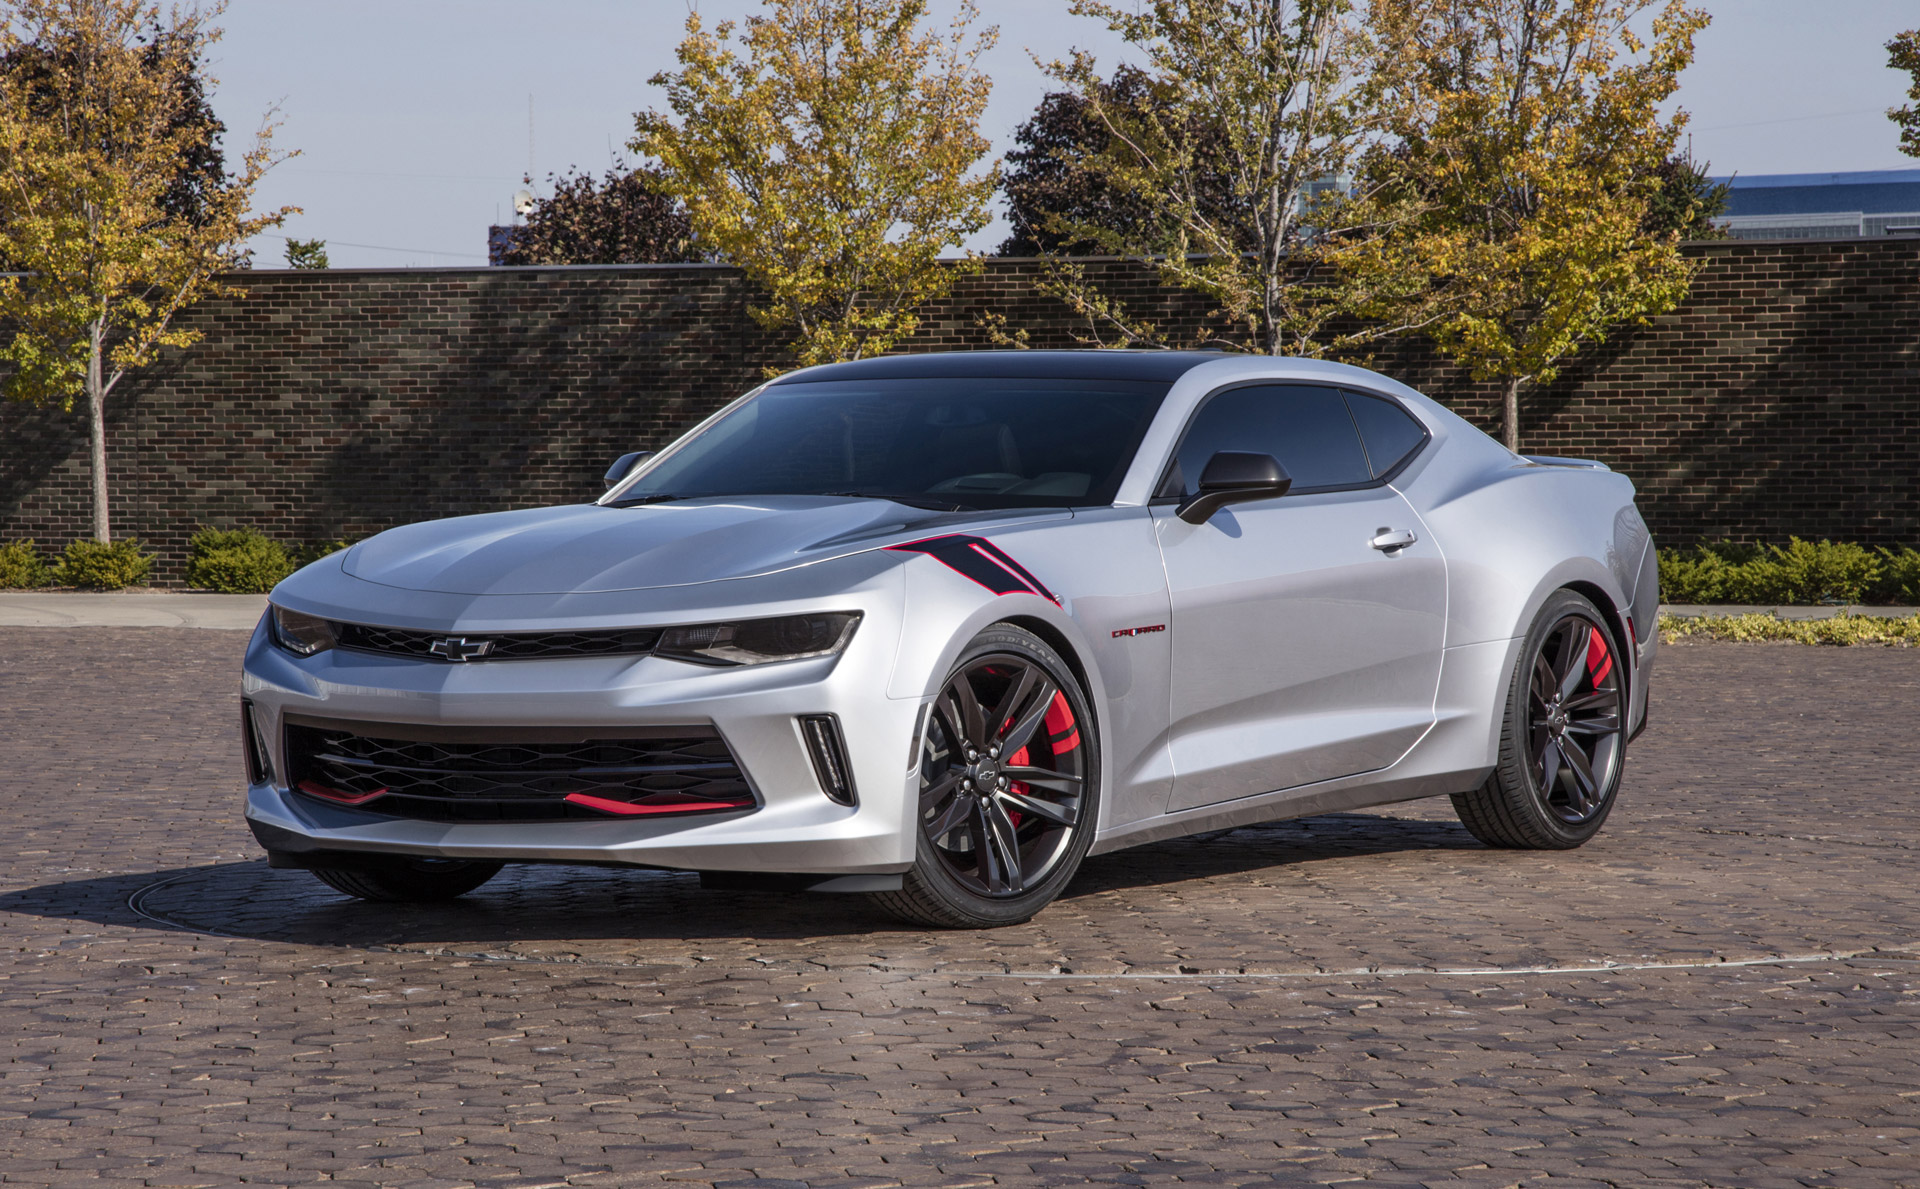 Chevy Previews New Accessories Range With SEMA Red Line ...